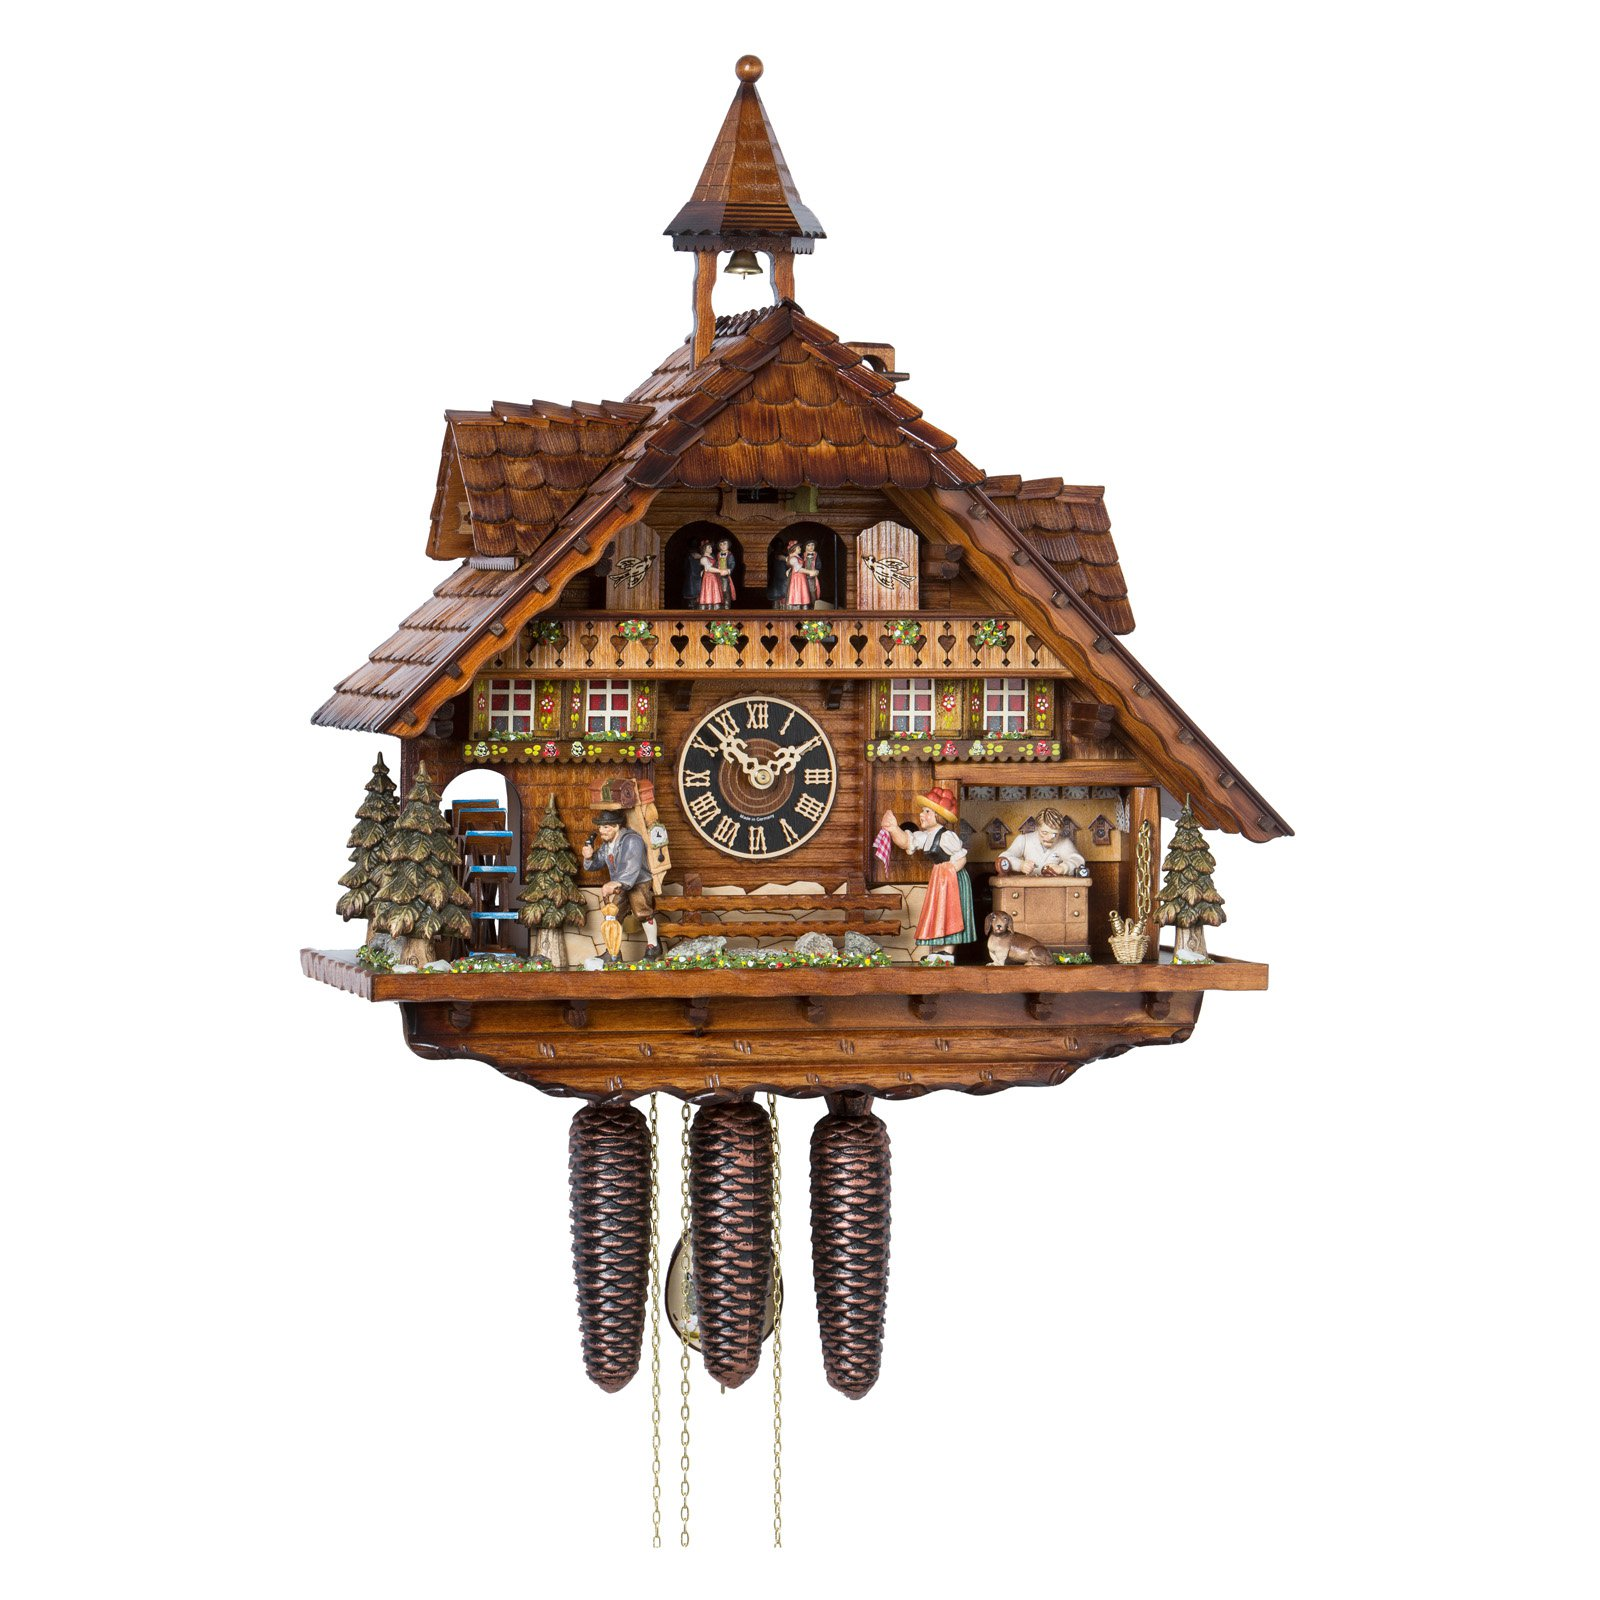 River City Clocks Eight Day Musical Cuckoo Clock with Moving Clockmaker Bell Ringer and... by River City Clocks